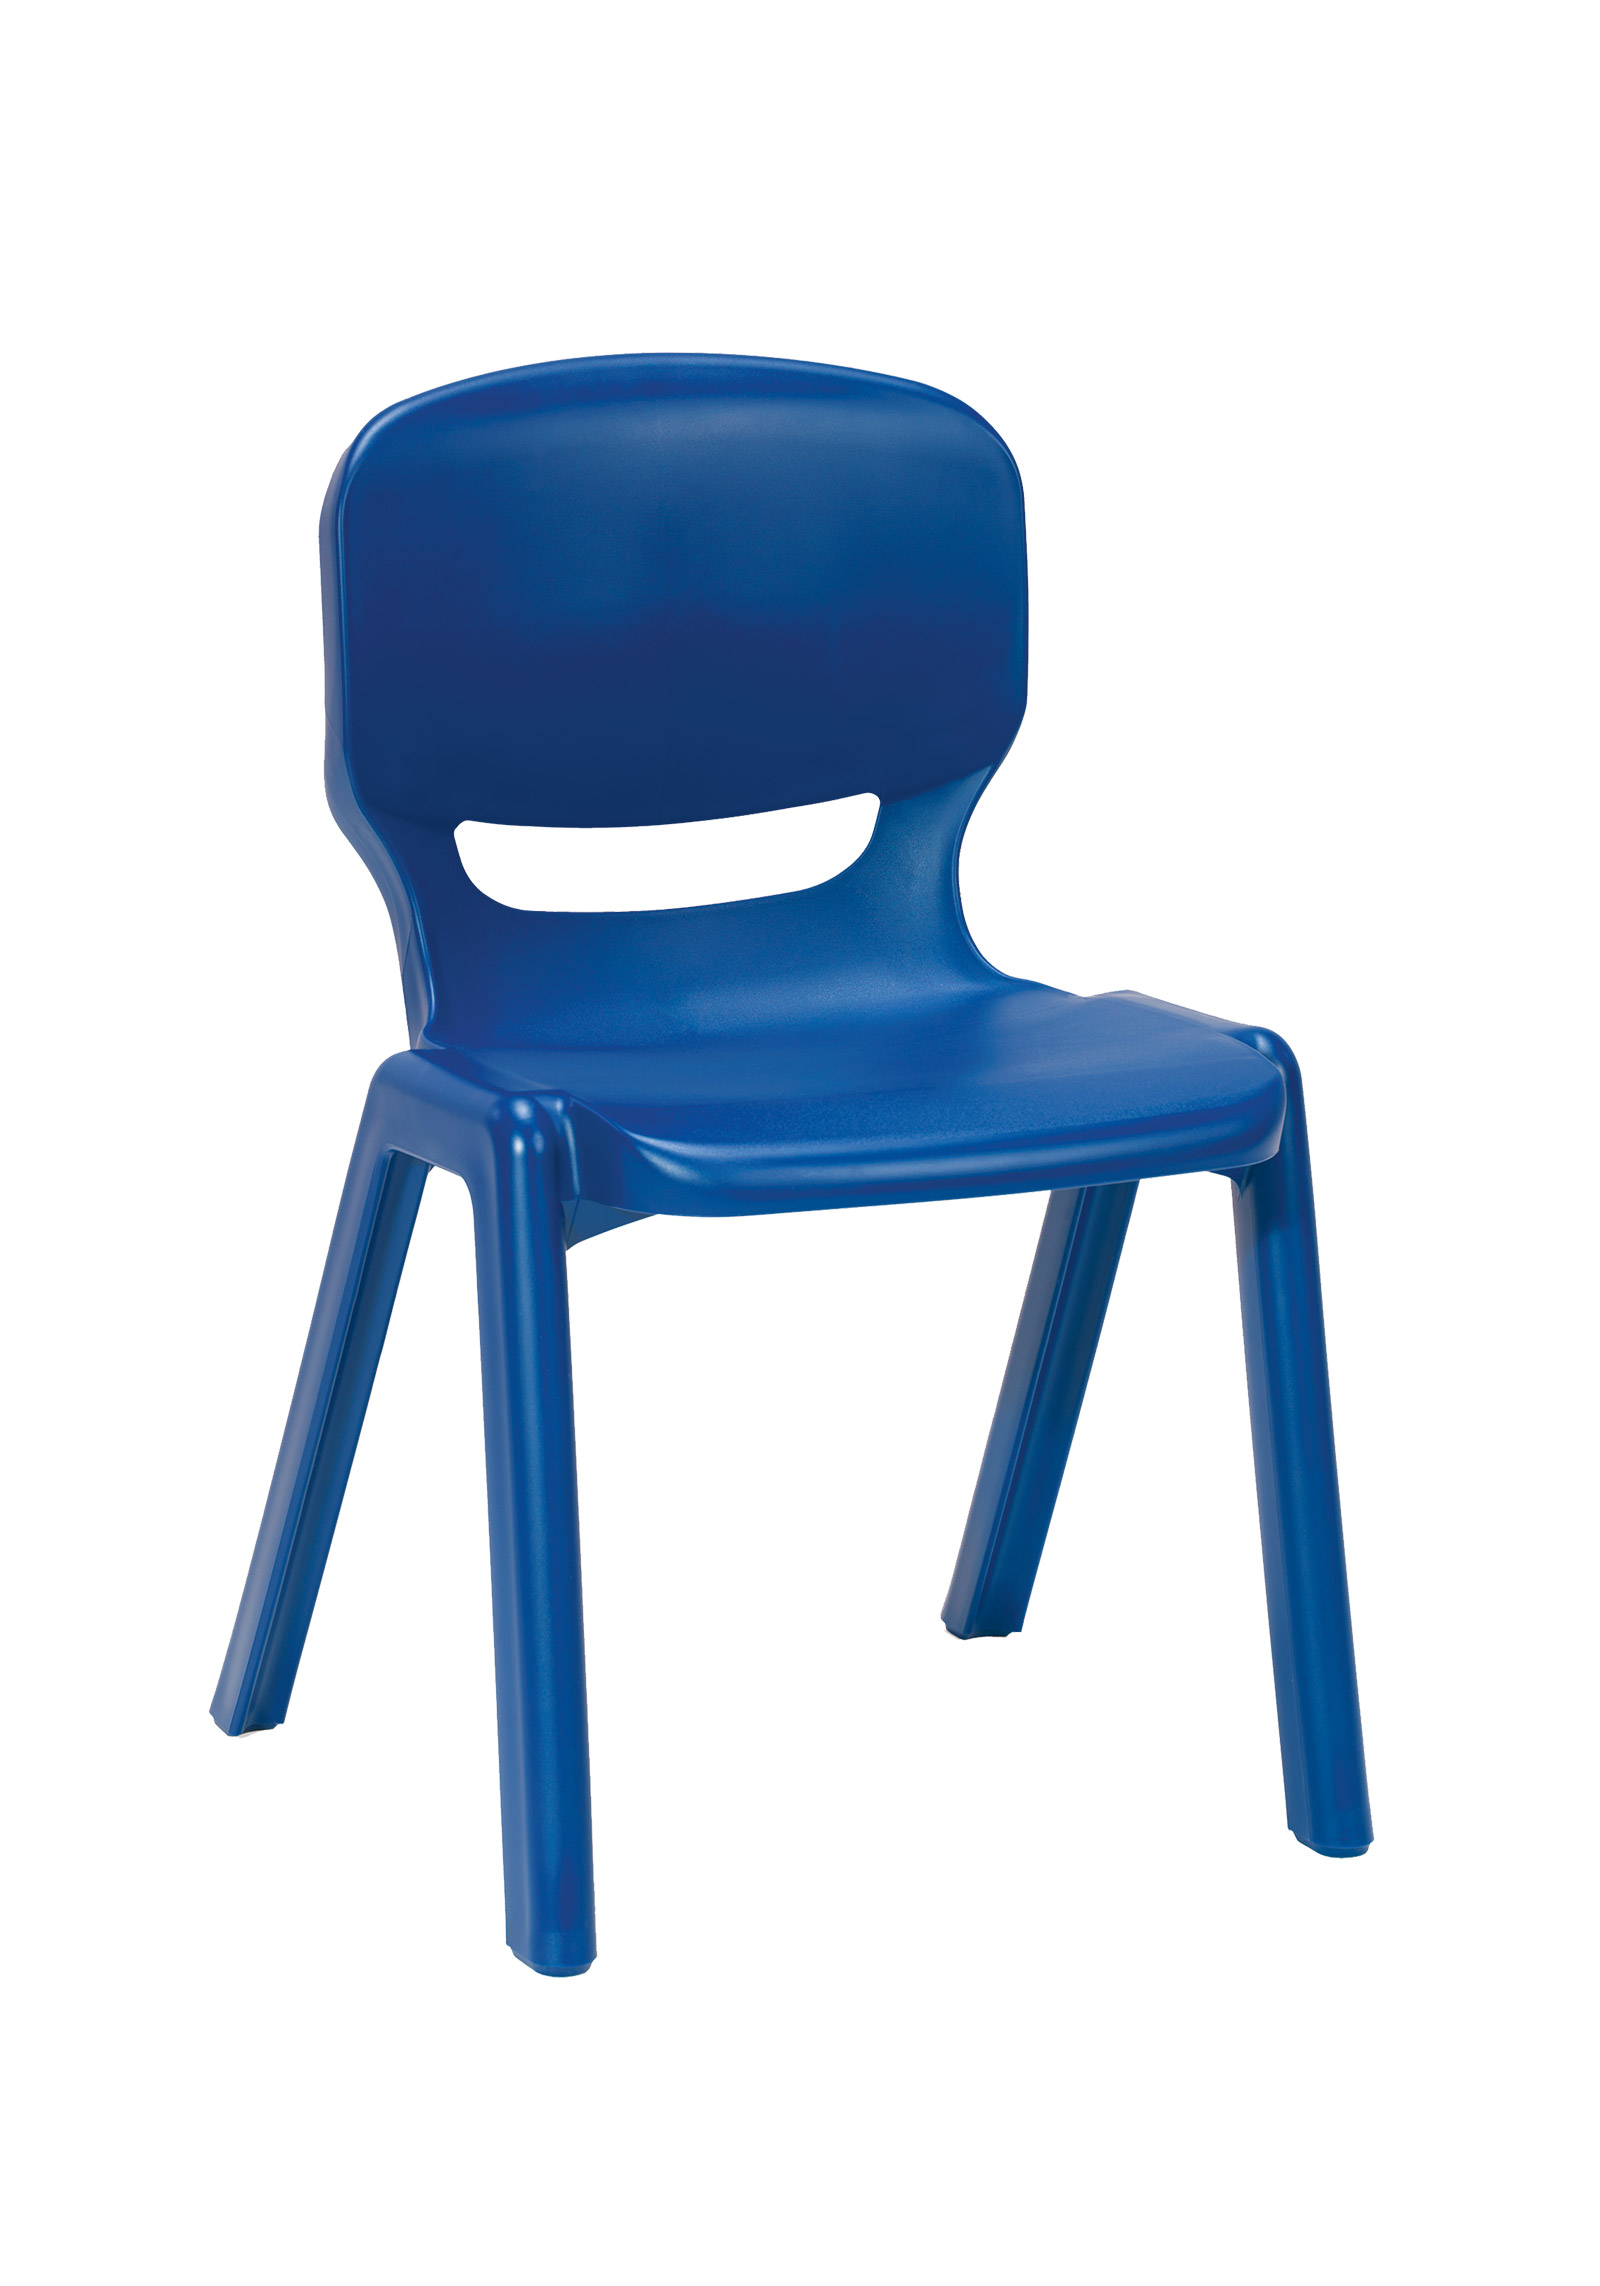 Ergos Versatile One Piece Educational Chair For Age 14-16 - Blue